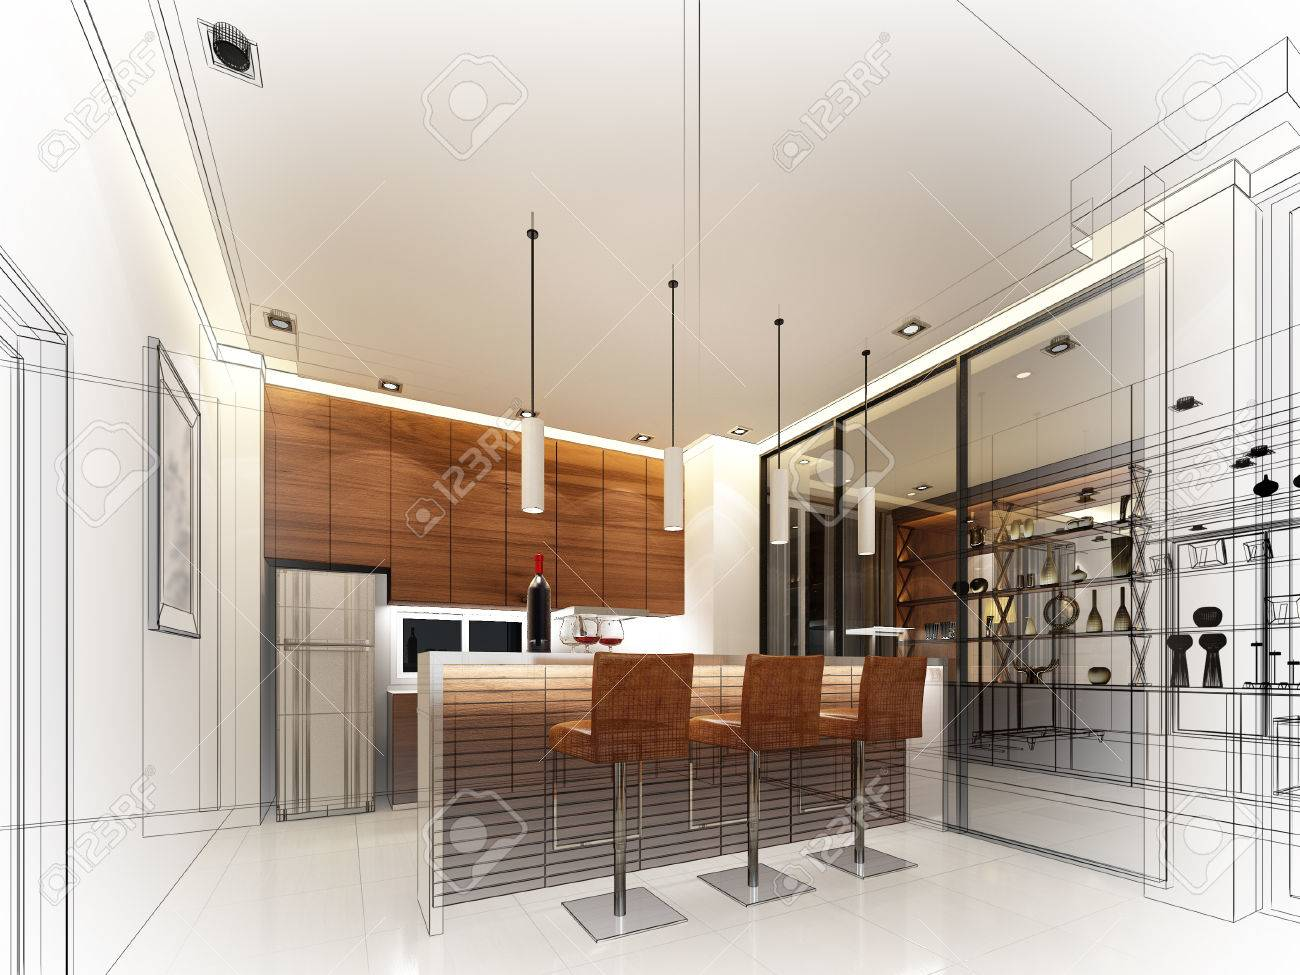 Abstract Sketch Design Of Interior Kitchen Stock Photo Picture And Royalty Free Image Image 50113432